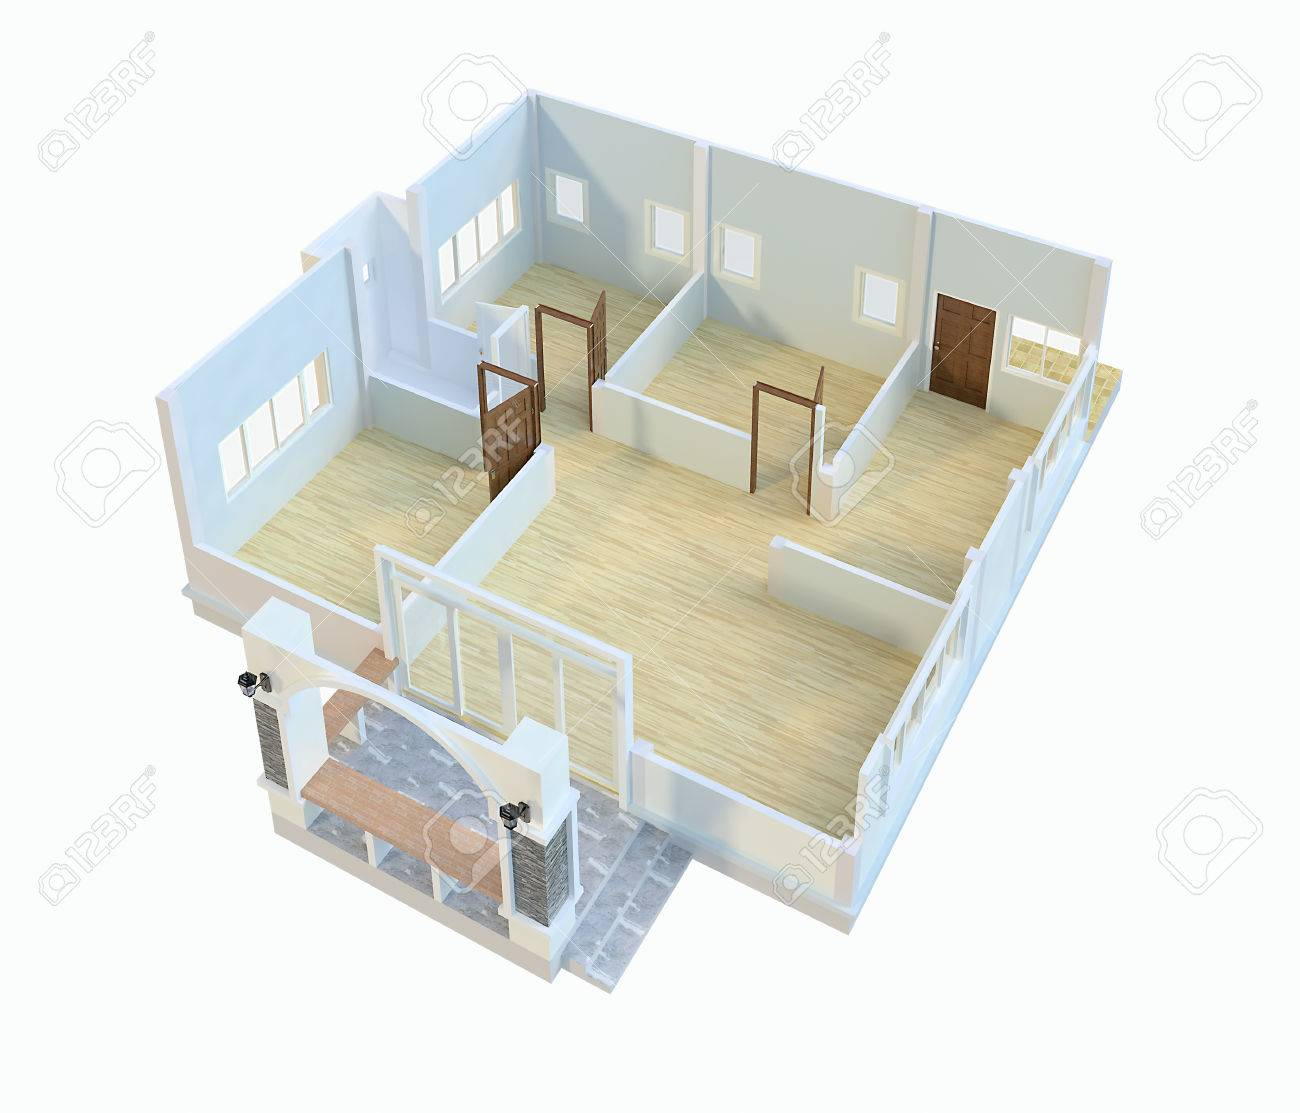 Writing A Modern House Plans Stock Photo Picture And Royalty Free Image Image 40269455